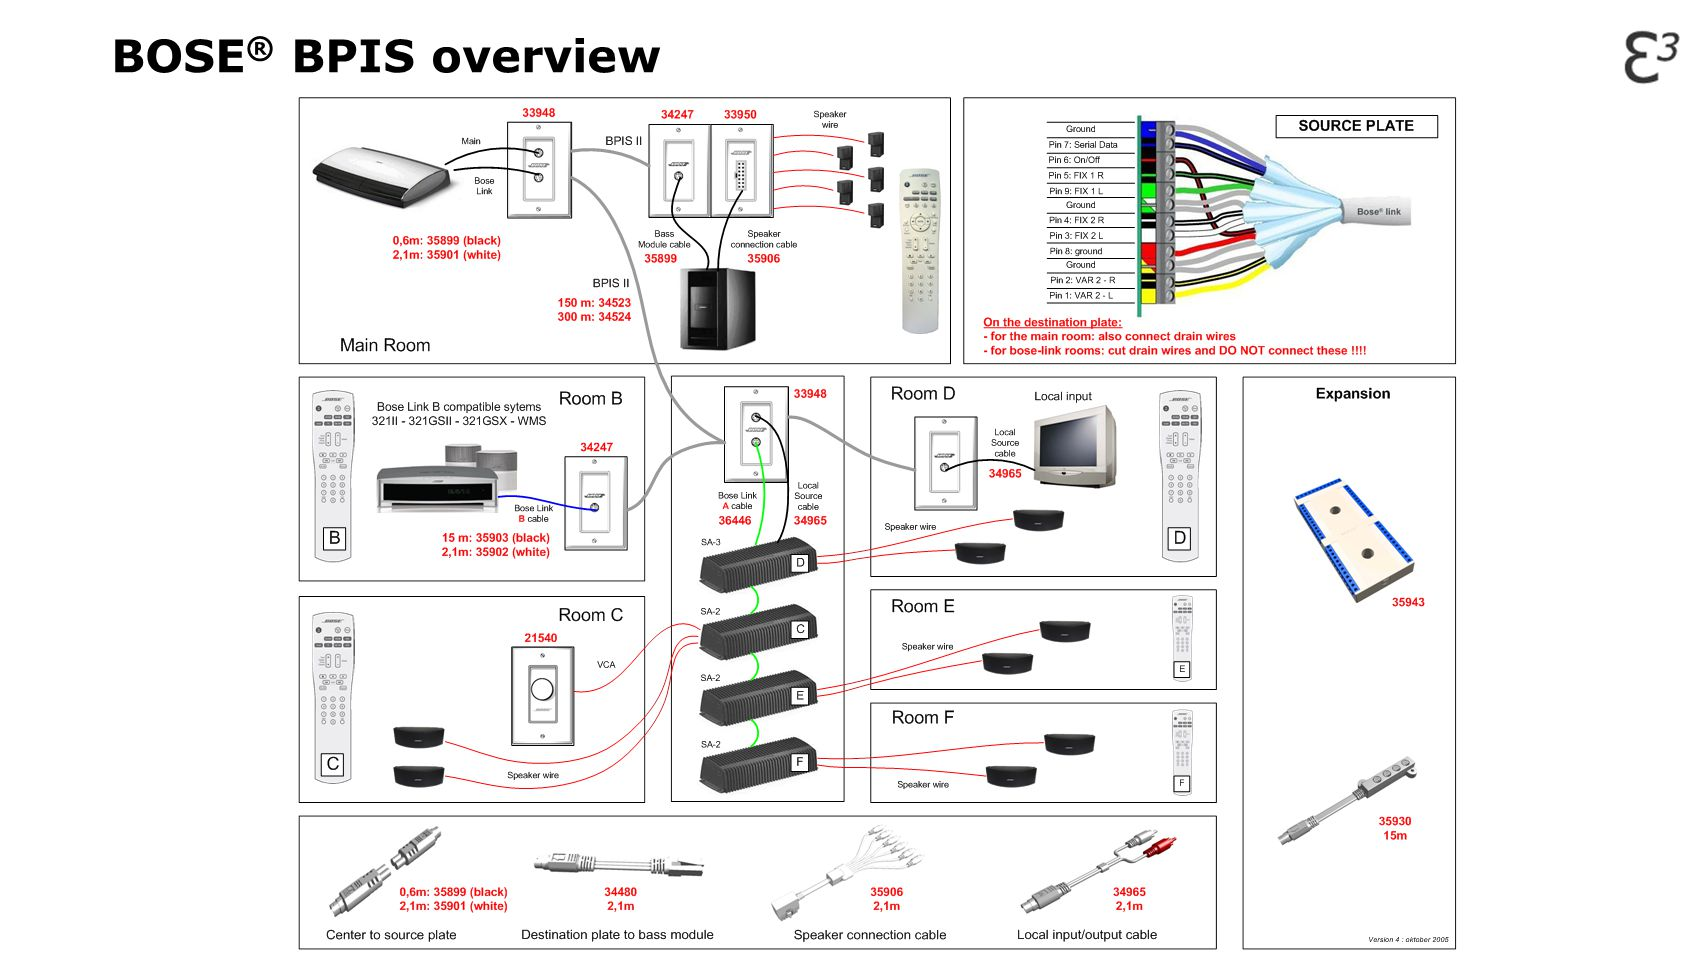 BOSE® BPIS overview